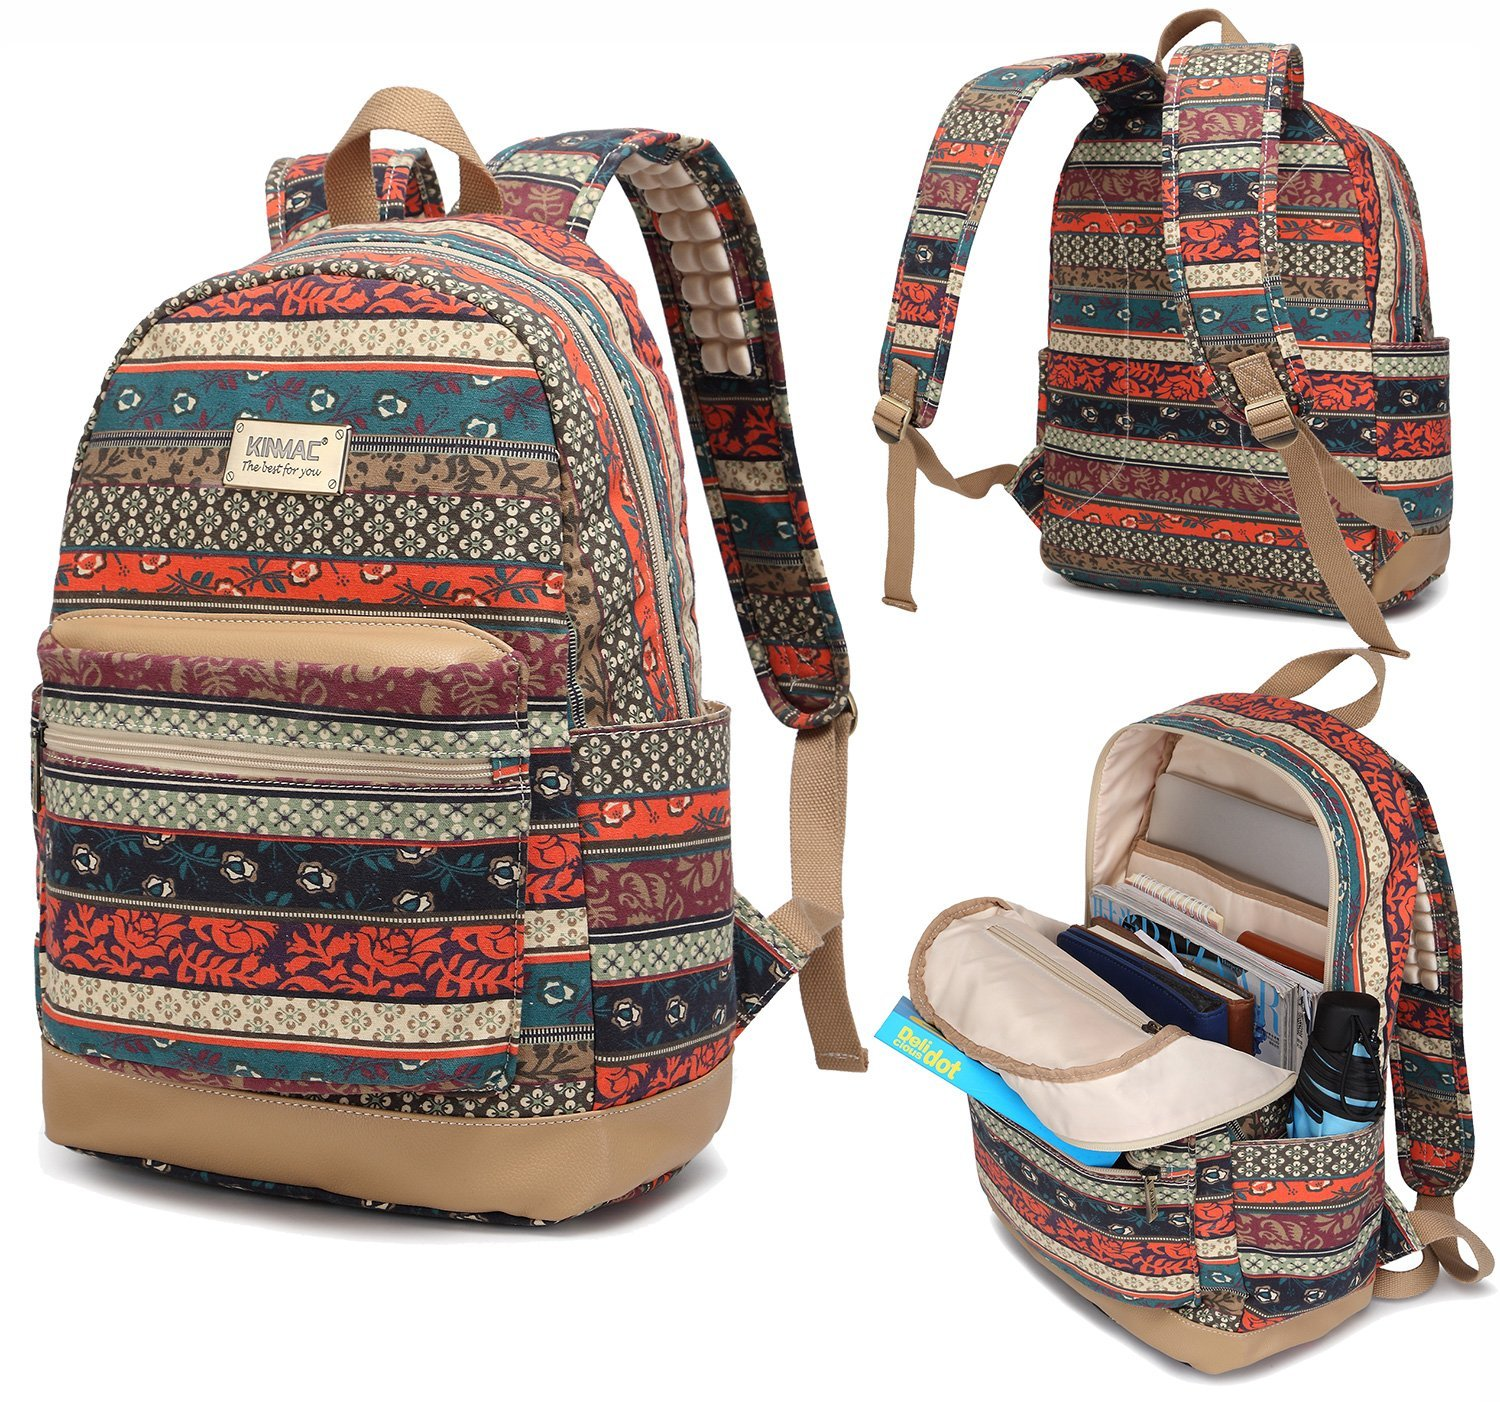 Kinmac Bohemian Water Resistant Laptop Backpack with Massage Cushion Straps for Laptop up to 15.6-Inch